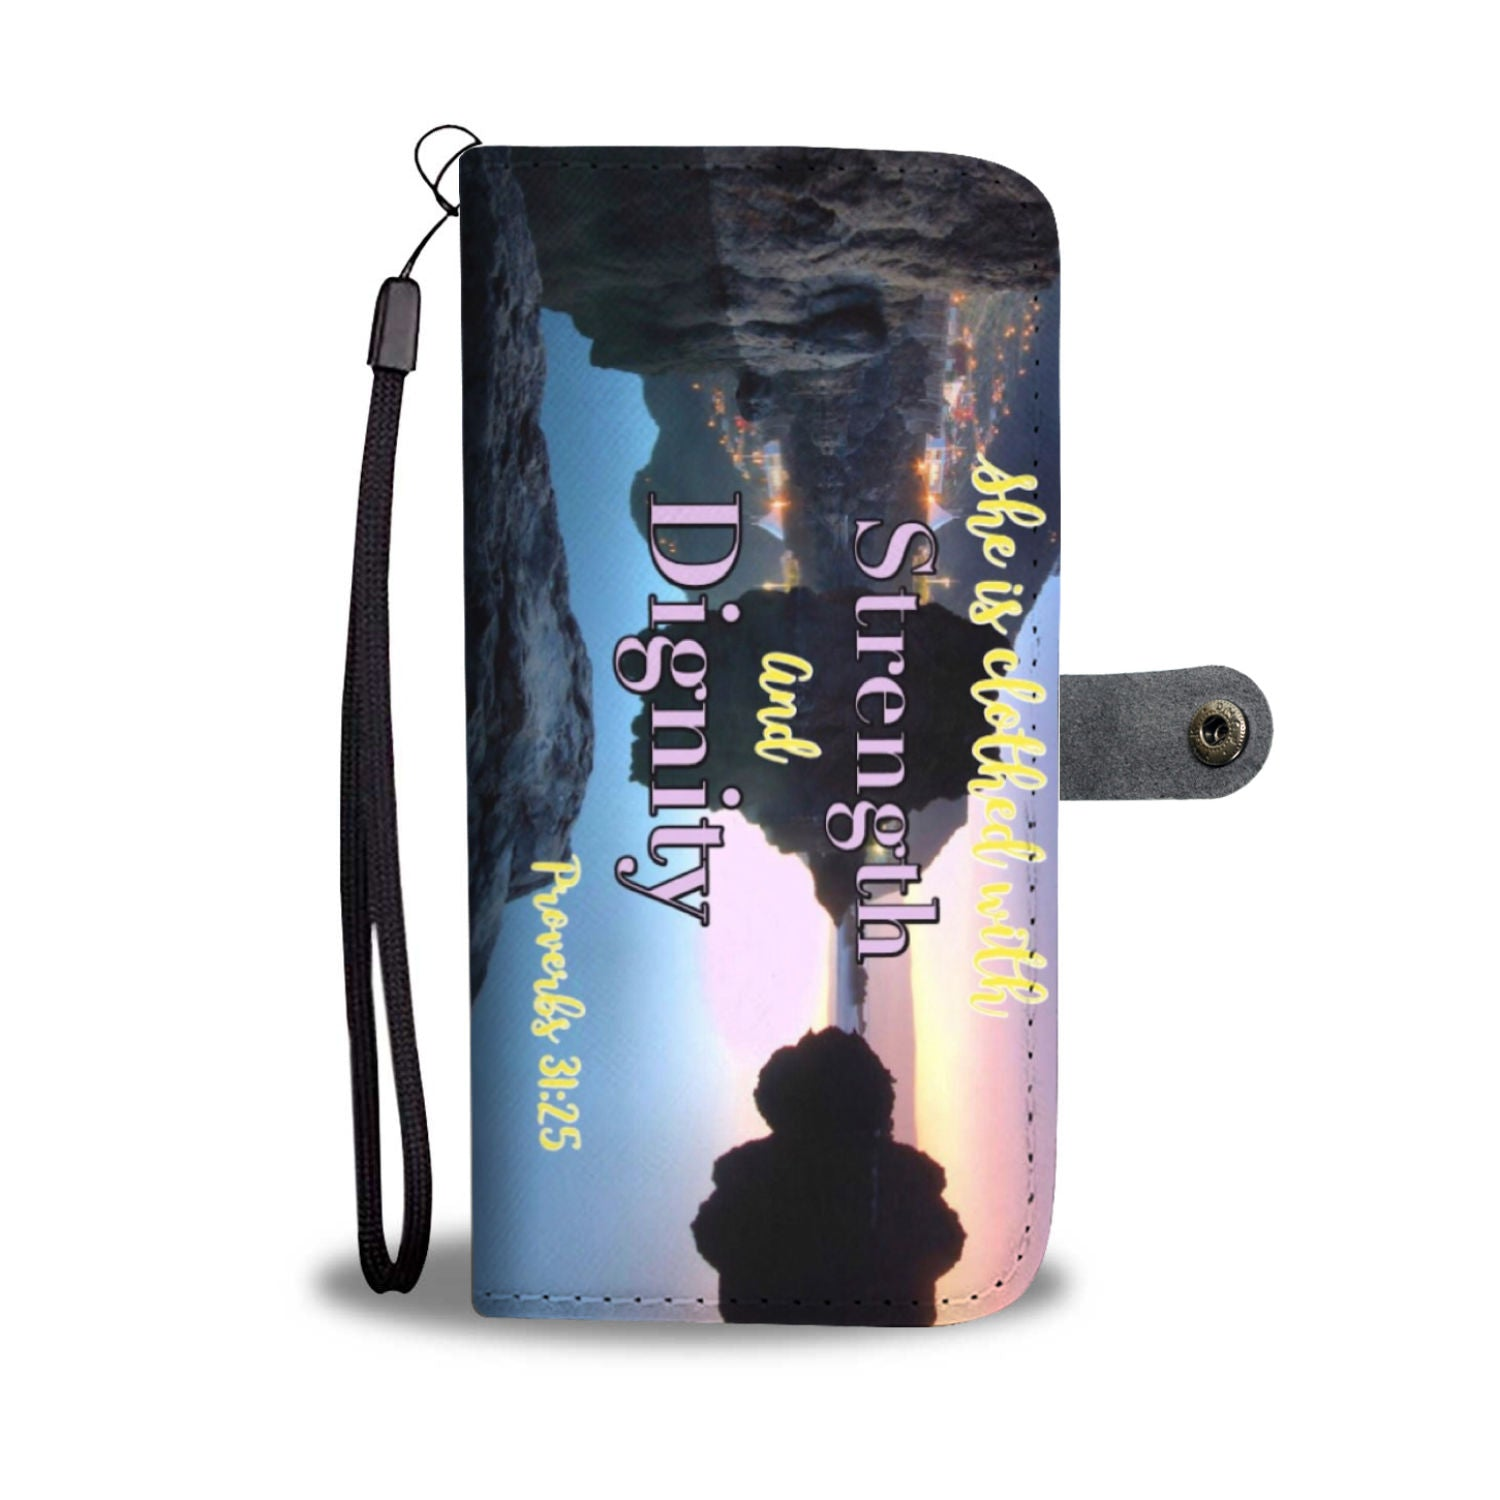 Proverbs 31:25 Wallet Phone Case